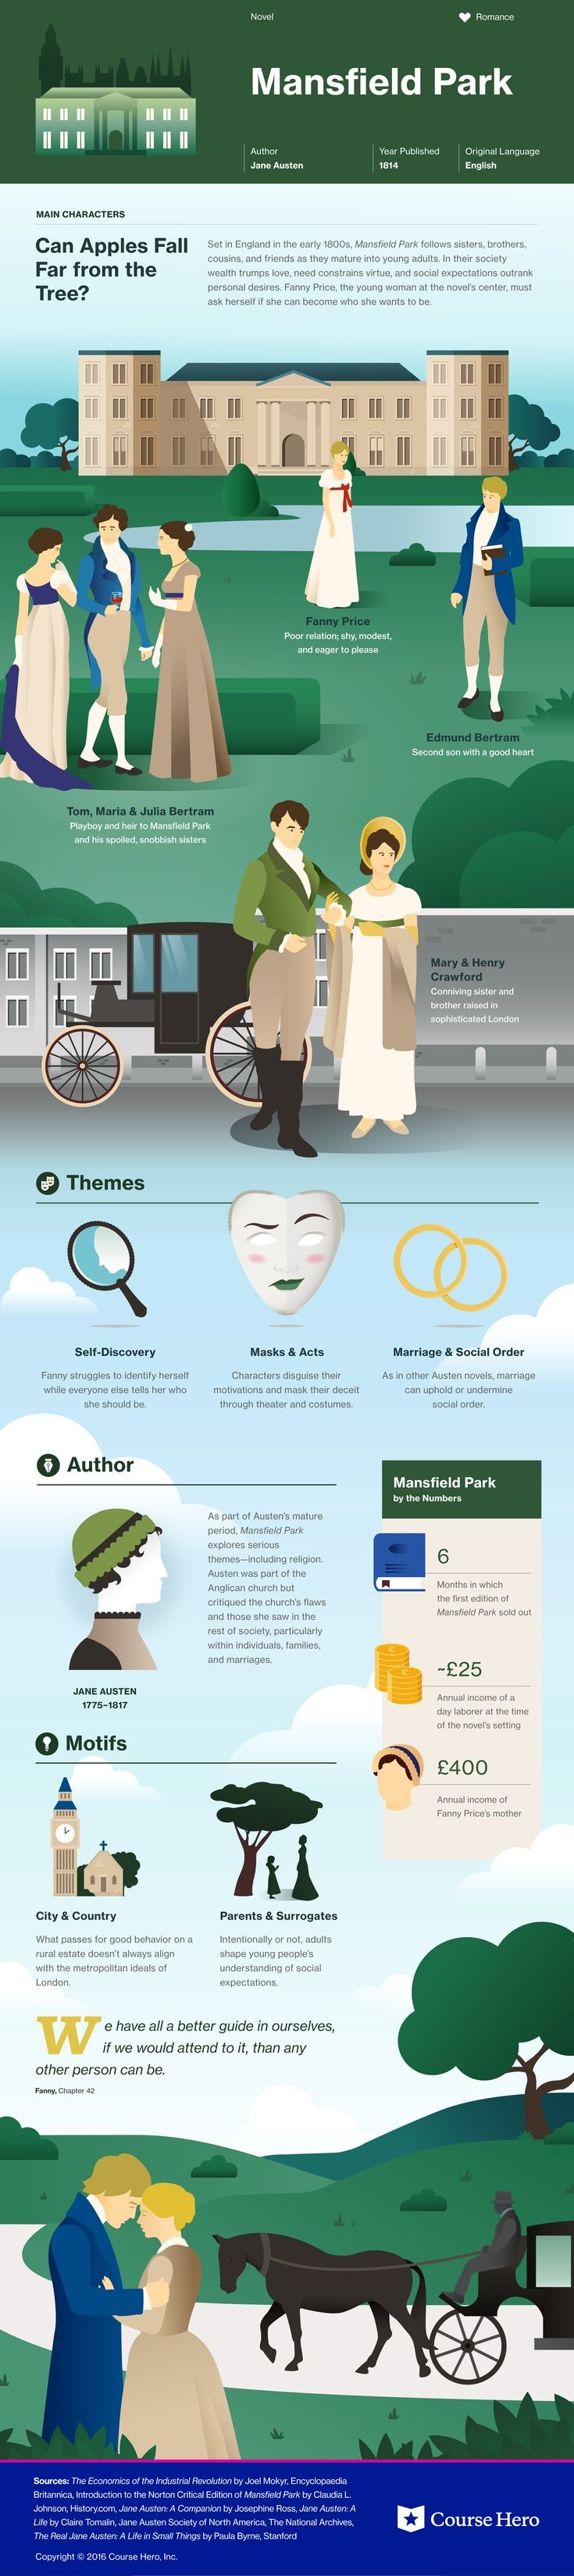 Mansfield Park Infographic | Course Hero